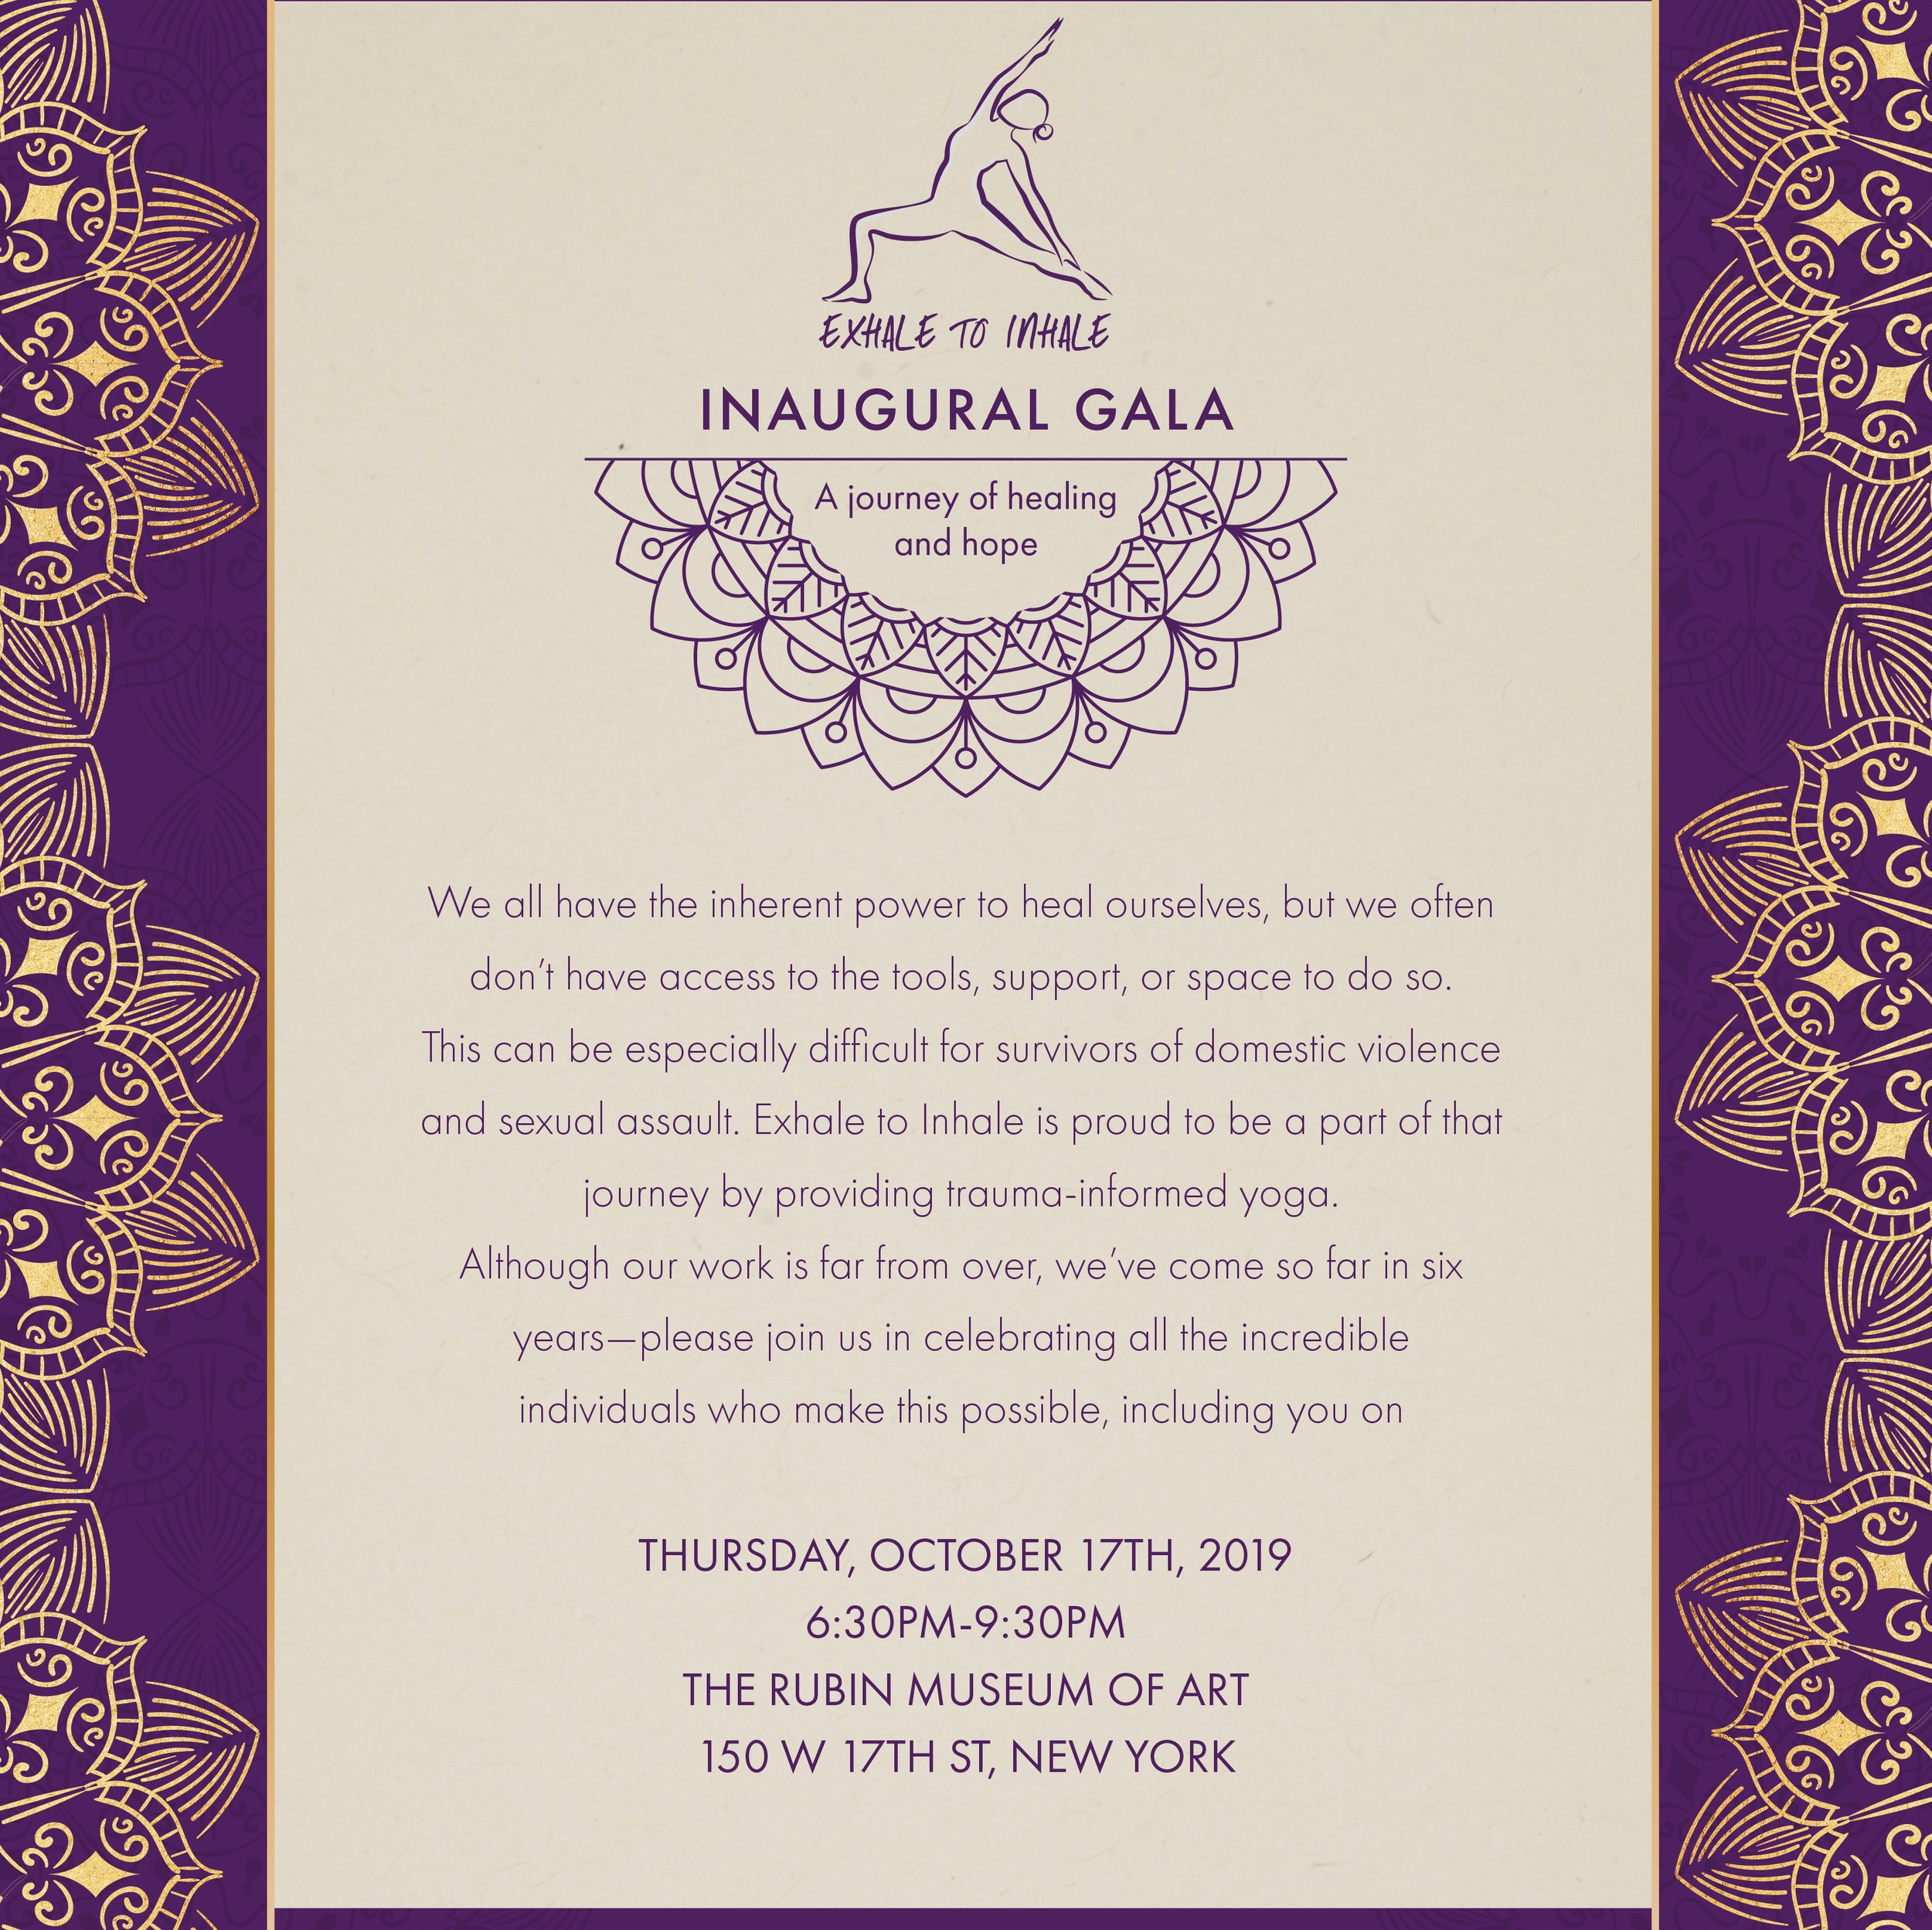 Exhale+to+Inhale+Inaugural+Gala